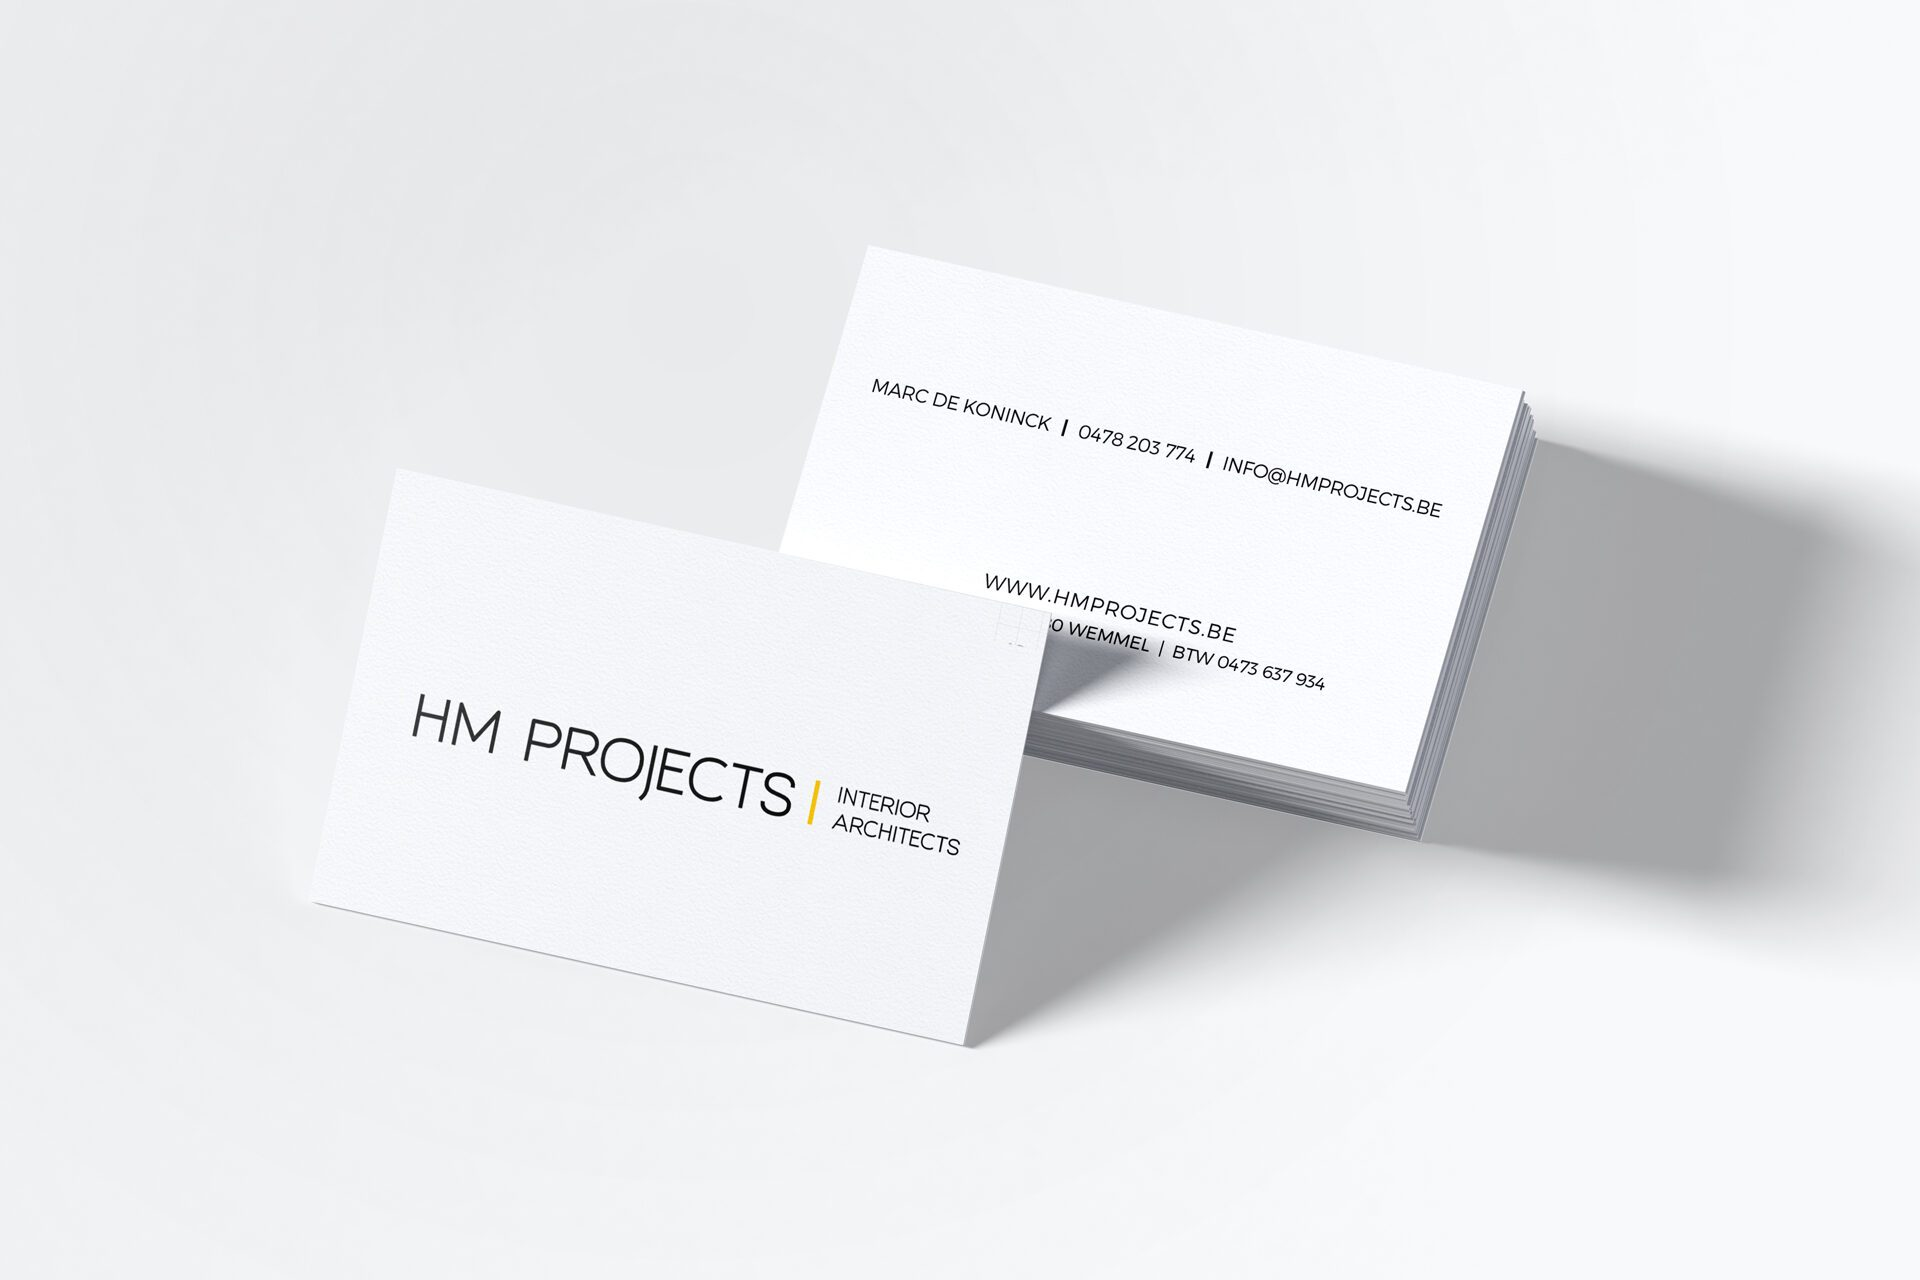 Picture HM projects Brand Identity